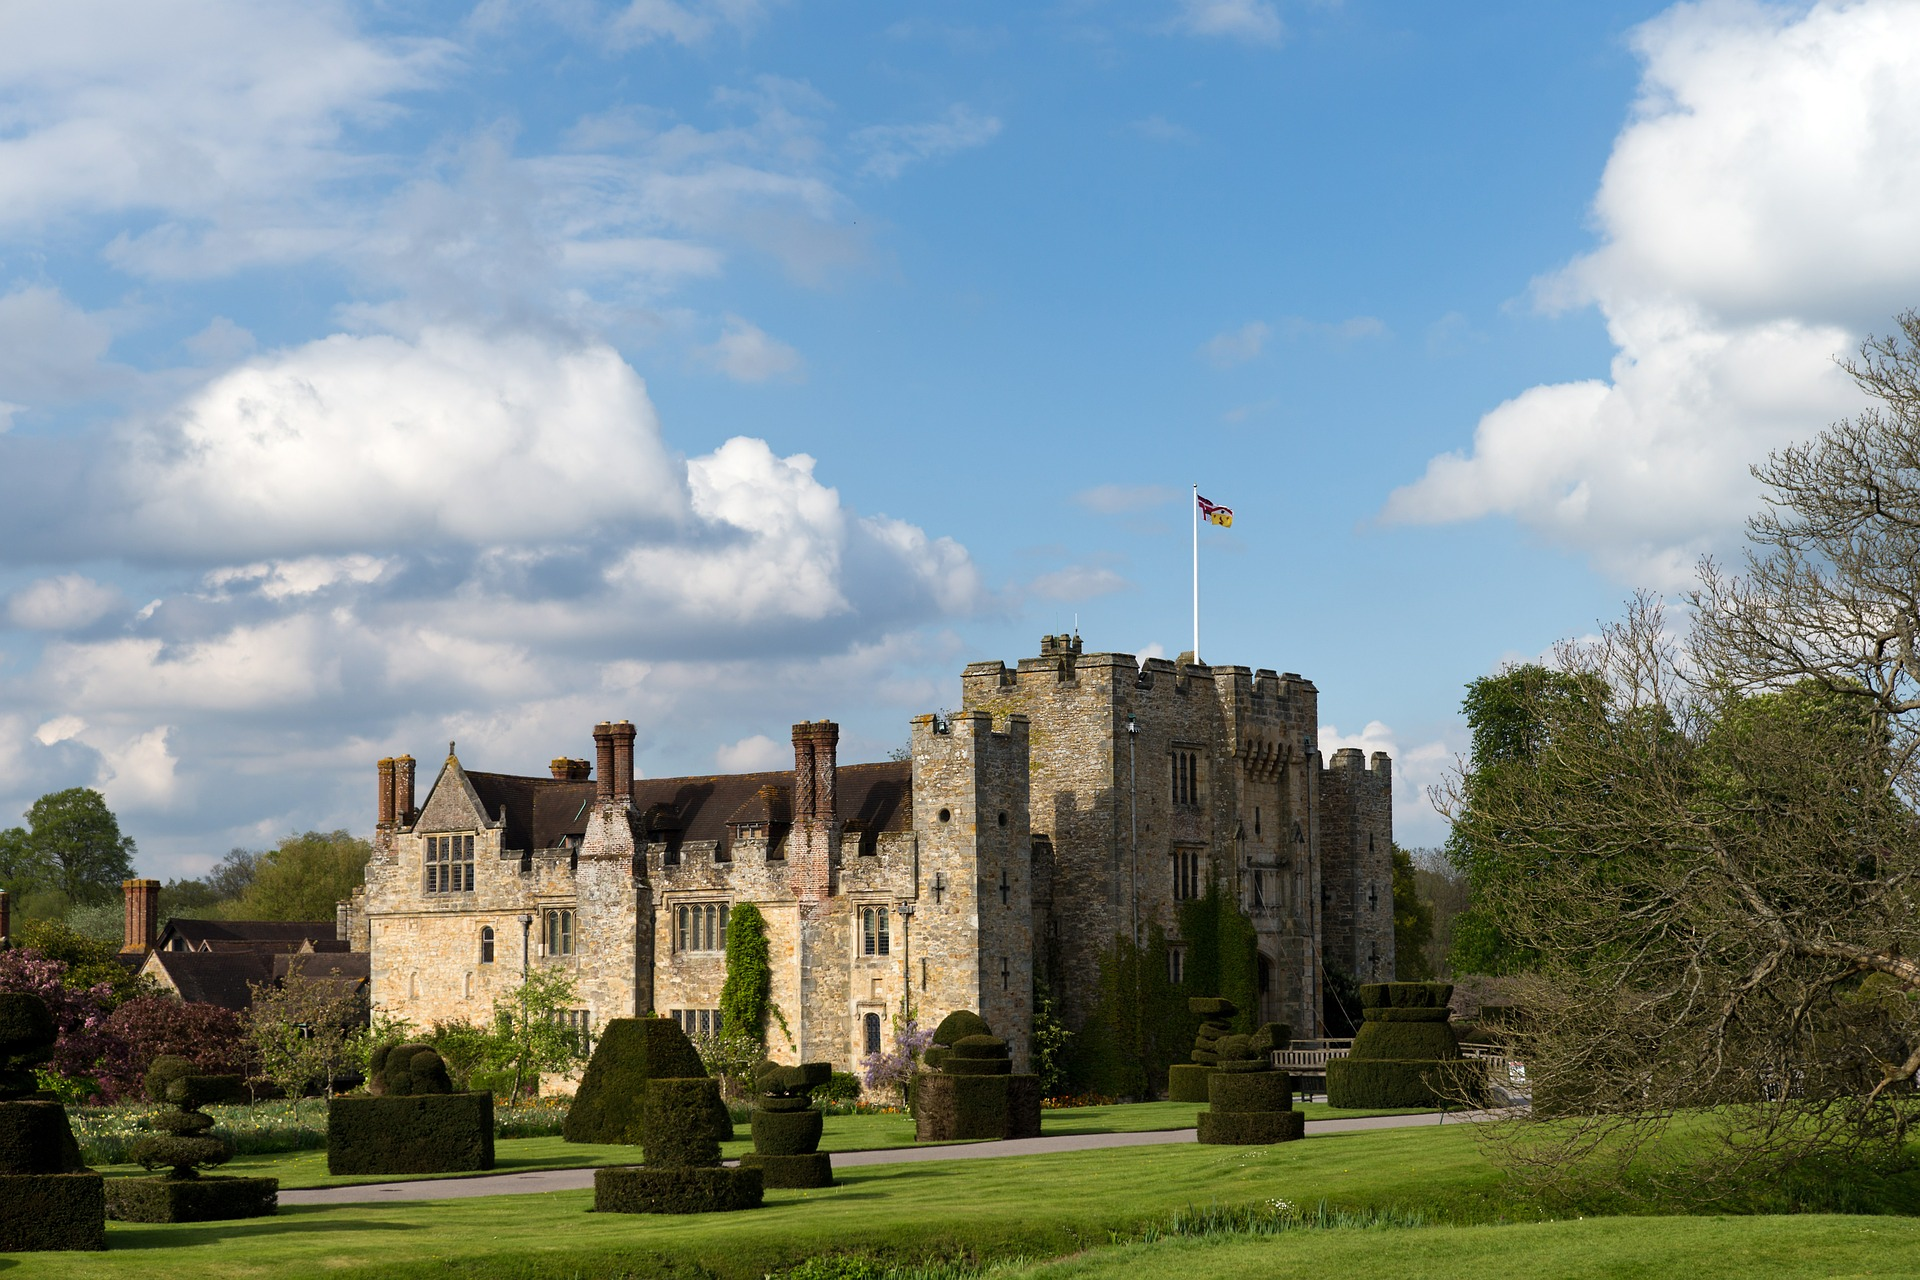 Hever Castle. Credit: Ron Porter from Pixabay